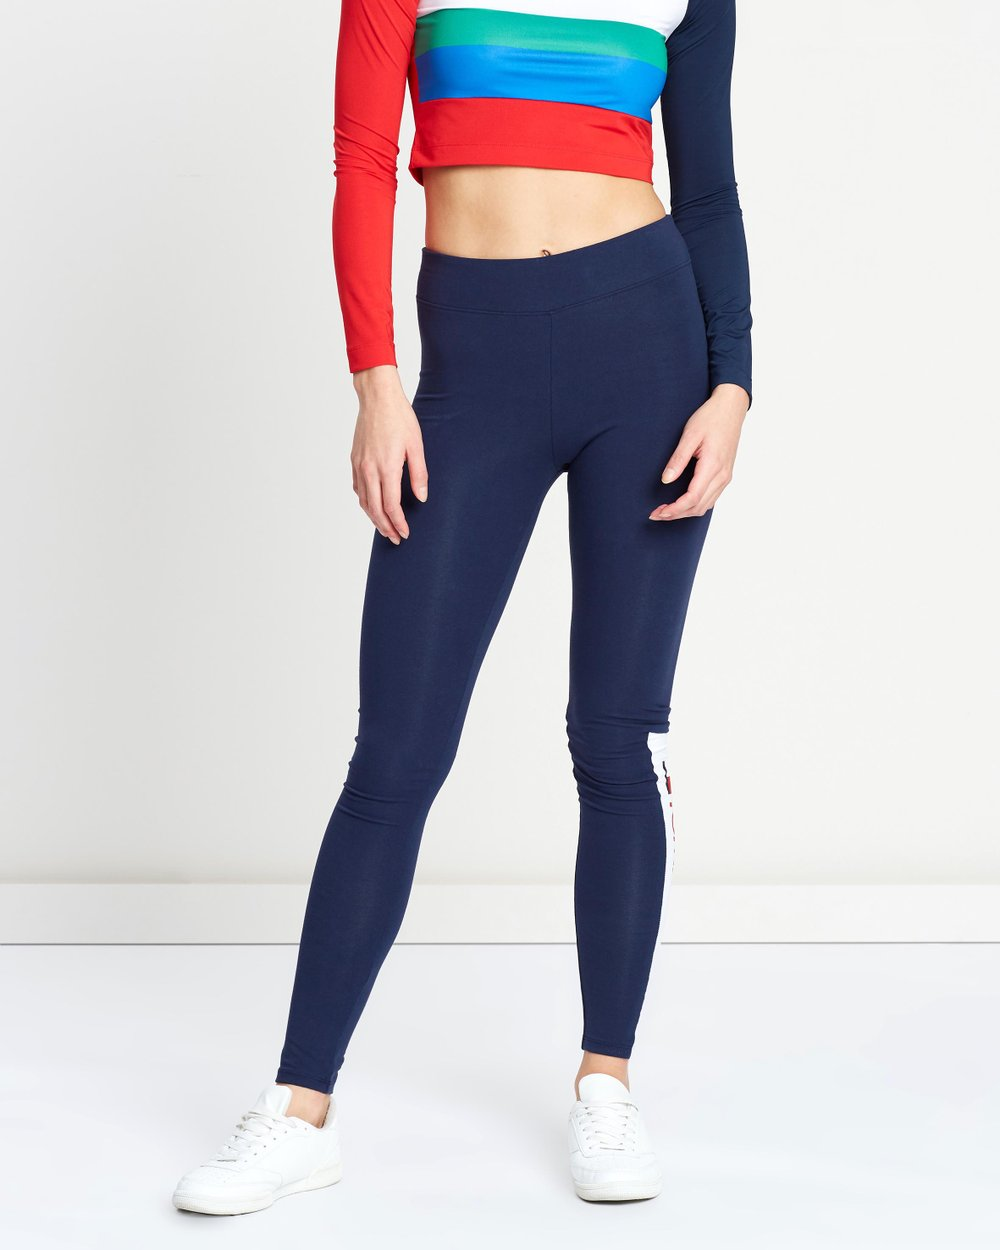 441708acb9b61 Contrast Panel Leggings by Tommy Sport Online | THE ICONIC | Australia